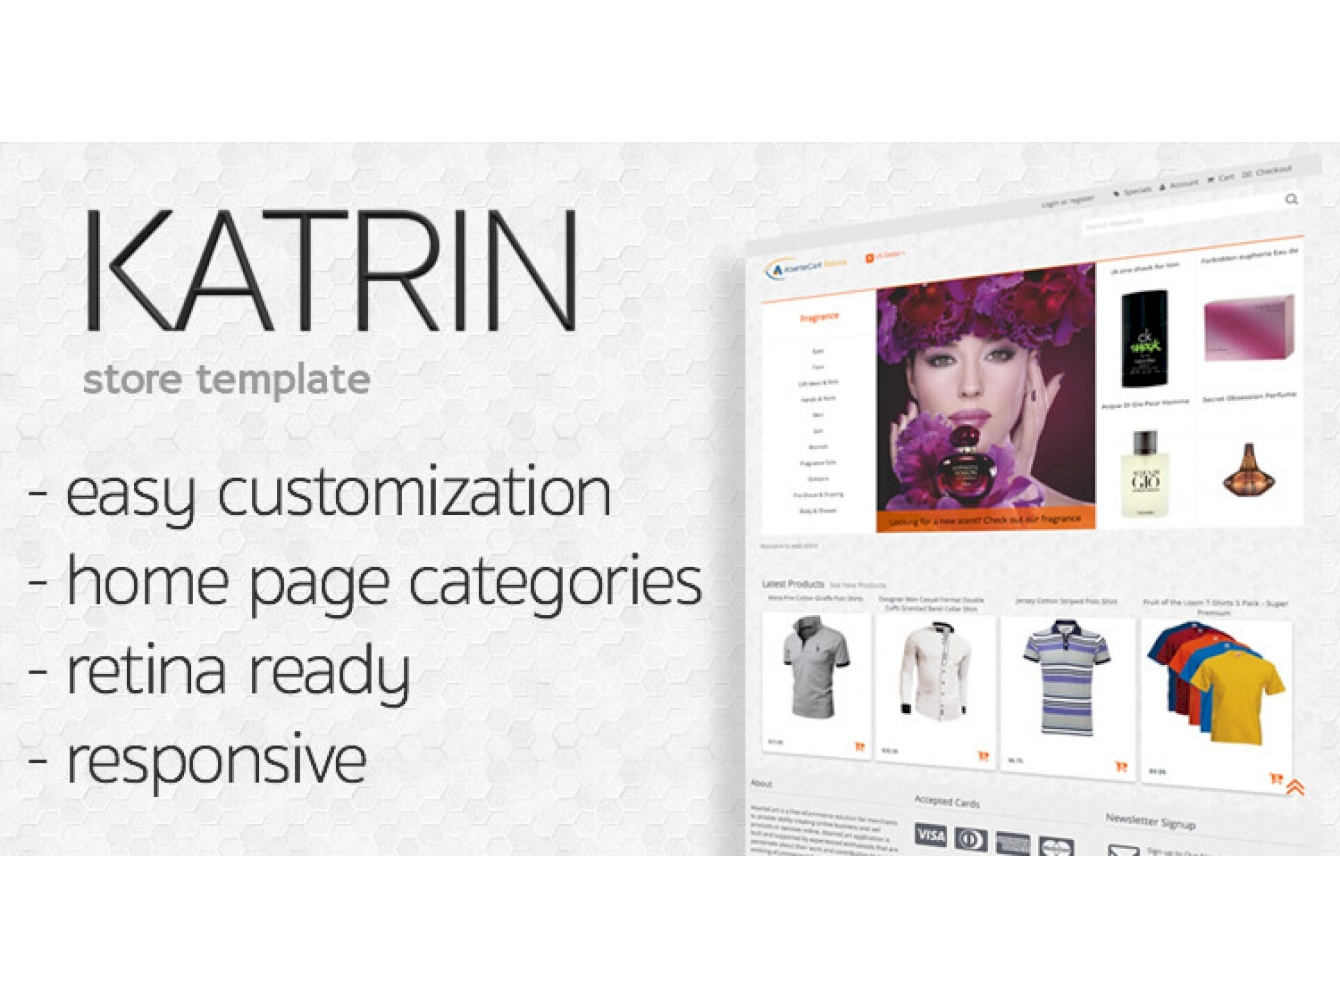 KATRIN Customisation AbanteCart theme